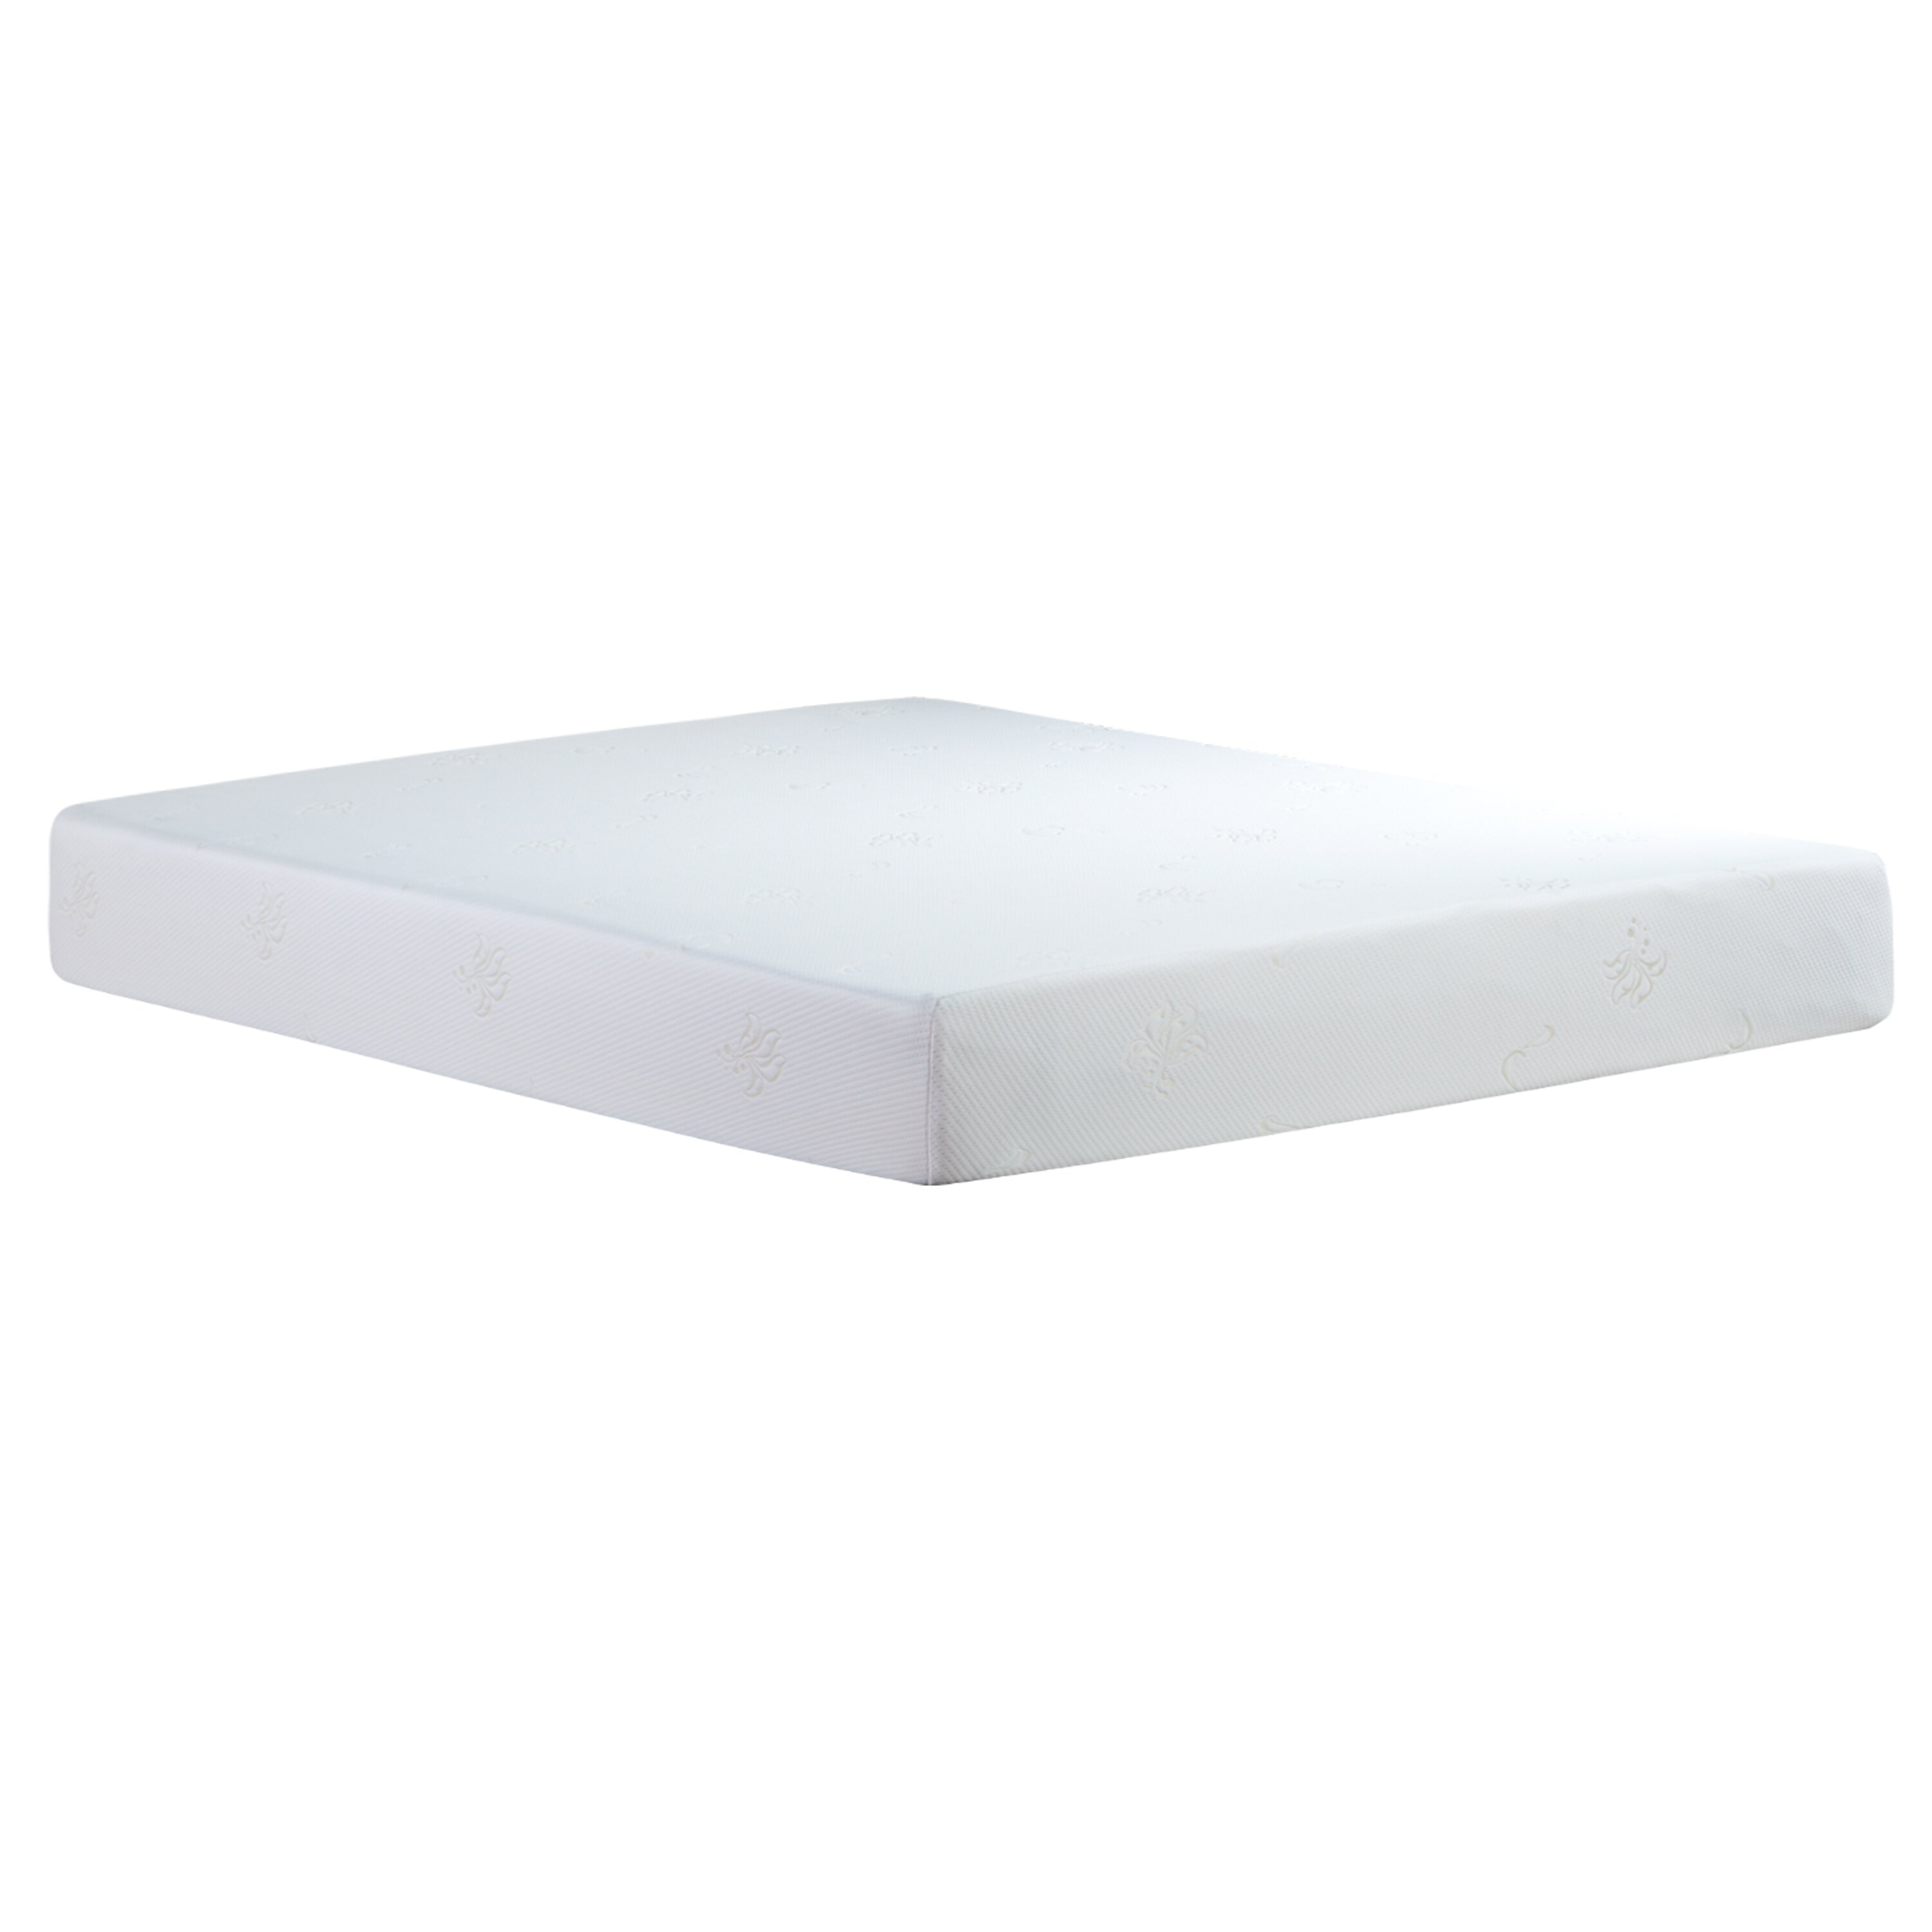 Classic Brands 10 Ventilated Memory Foam Mattress Reviews Wayfair